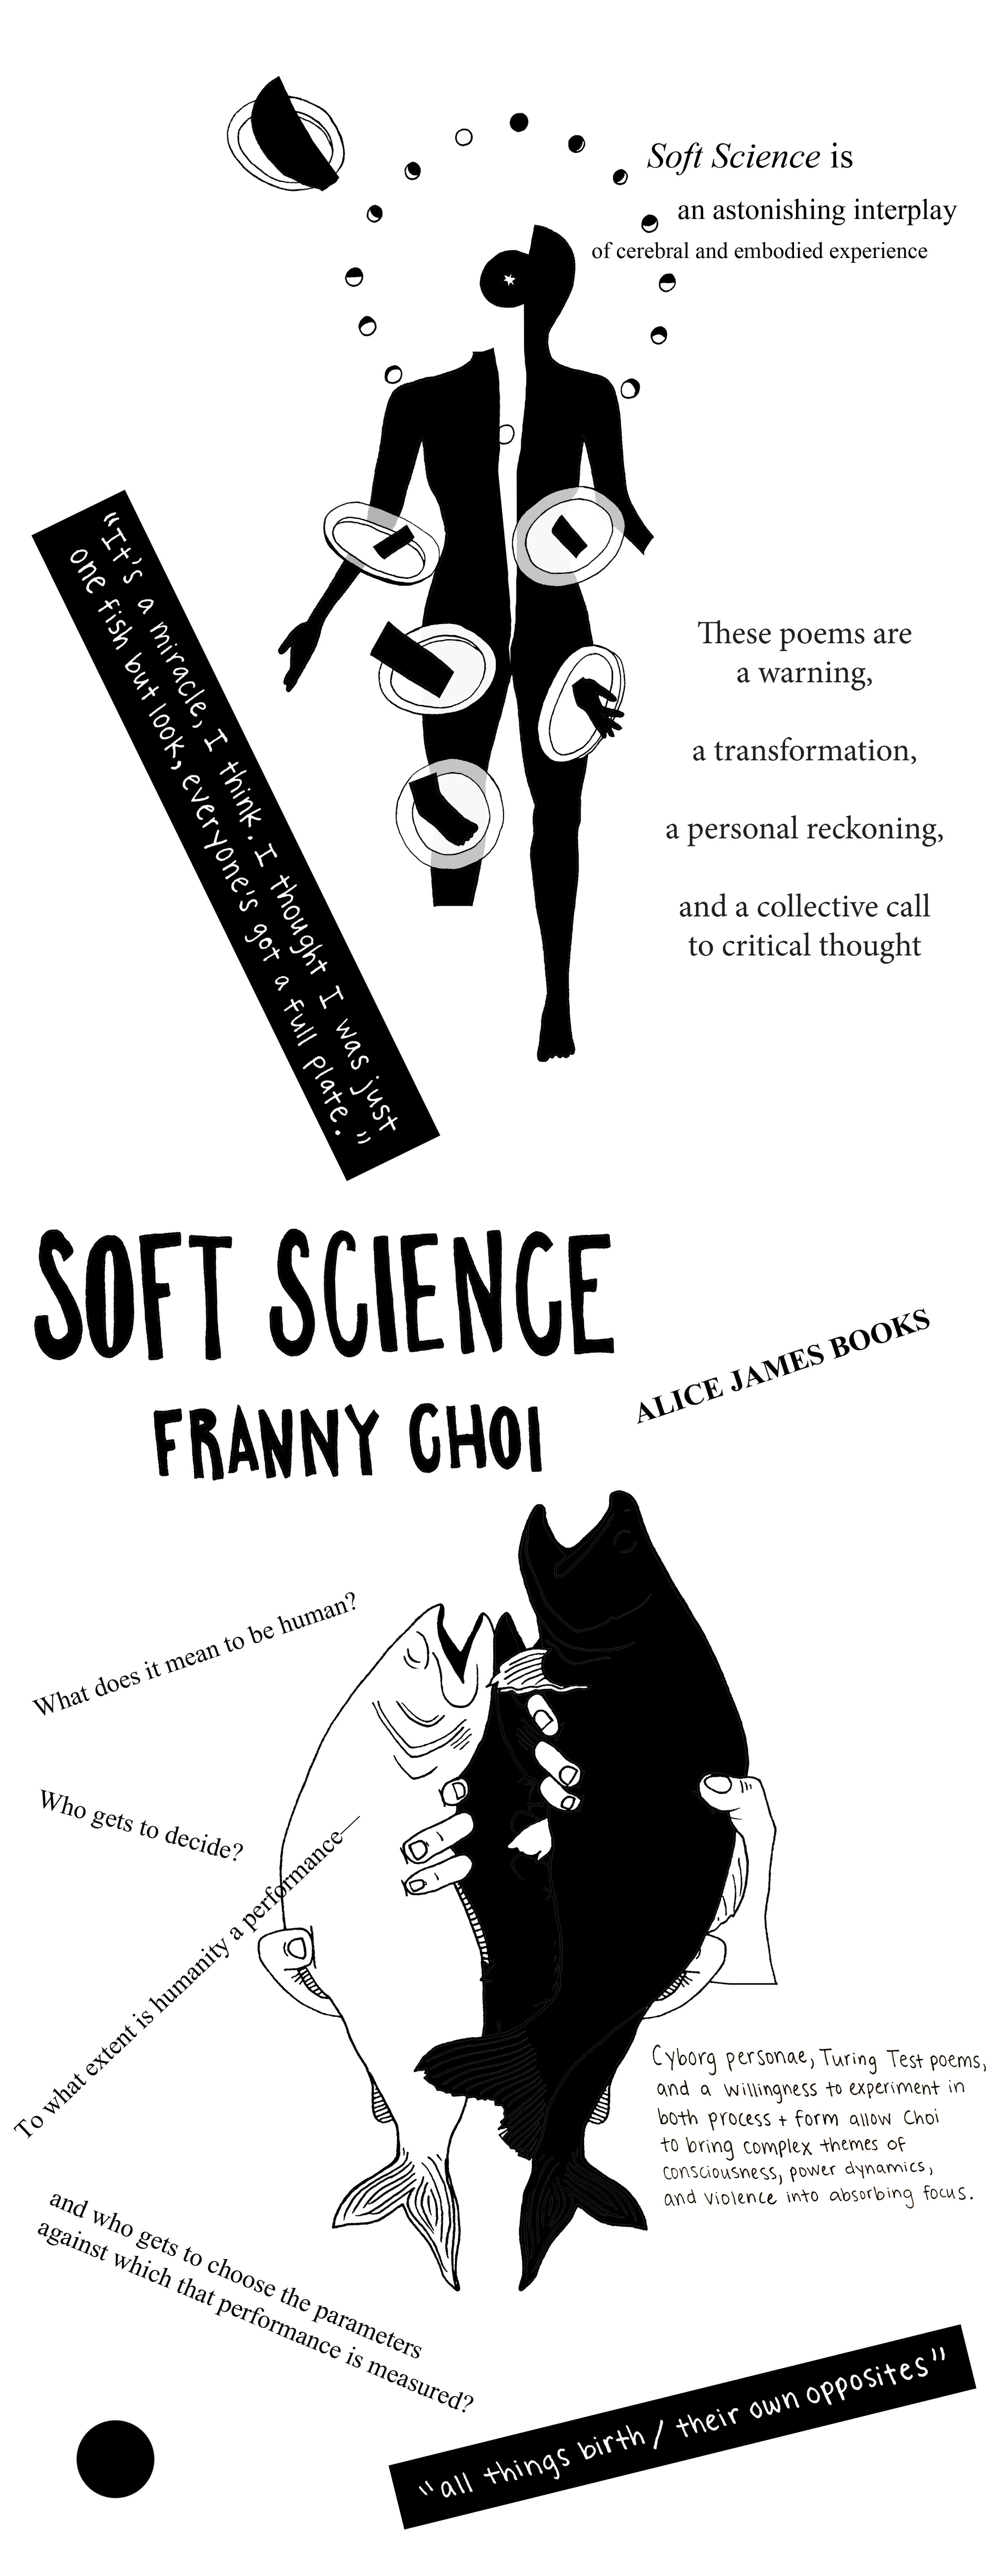 3-Soft Science graphic review by Gabrielle Bates v2.jpg